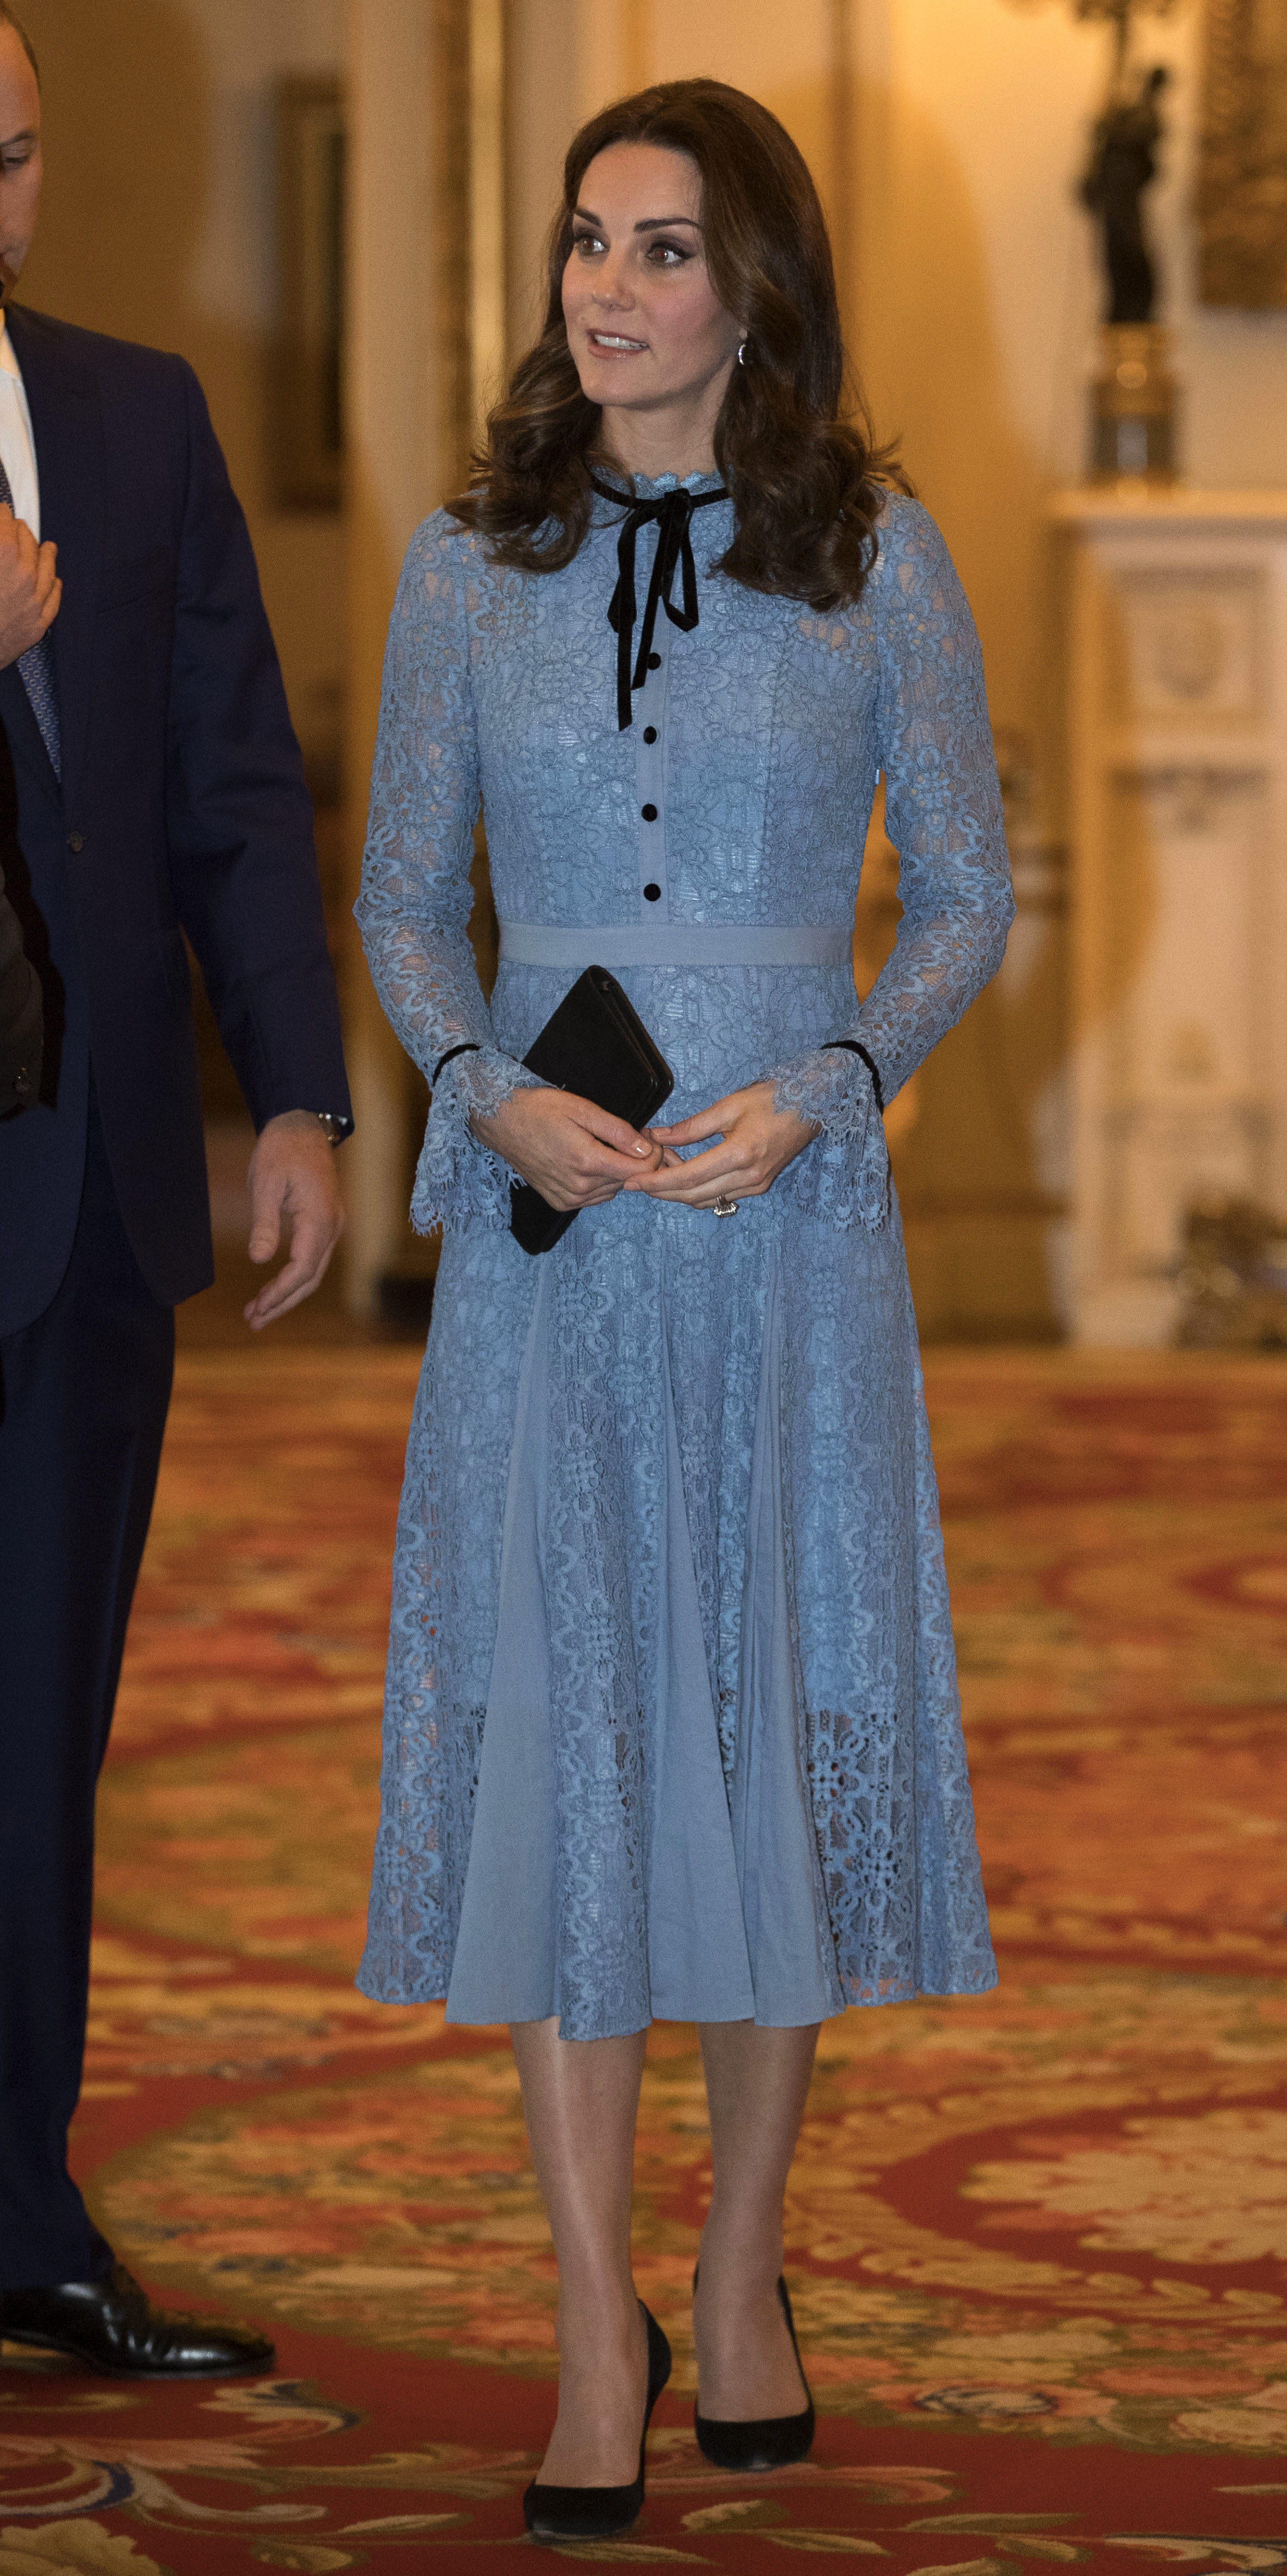 "<div class=""meta image-caption""><div class=""origin-logo origin-image none""><span>none</span></div><span class=""caption-text"">Kate attends a reception at Buckingham Palace, London, to celebrate World Mental Health Day, Tuesday Oct. 10, 2017. (Heathcliff O'Malley/pool via AP)</span></div>"